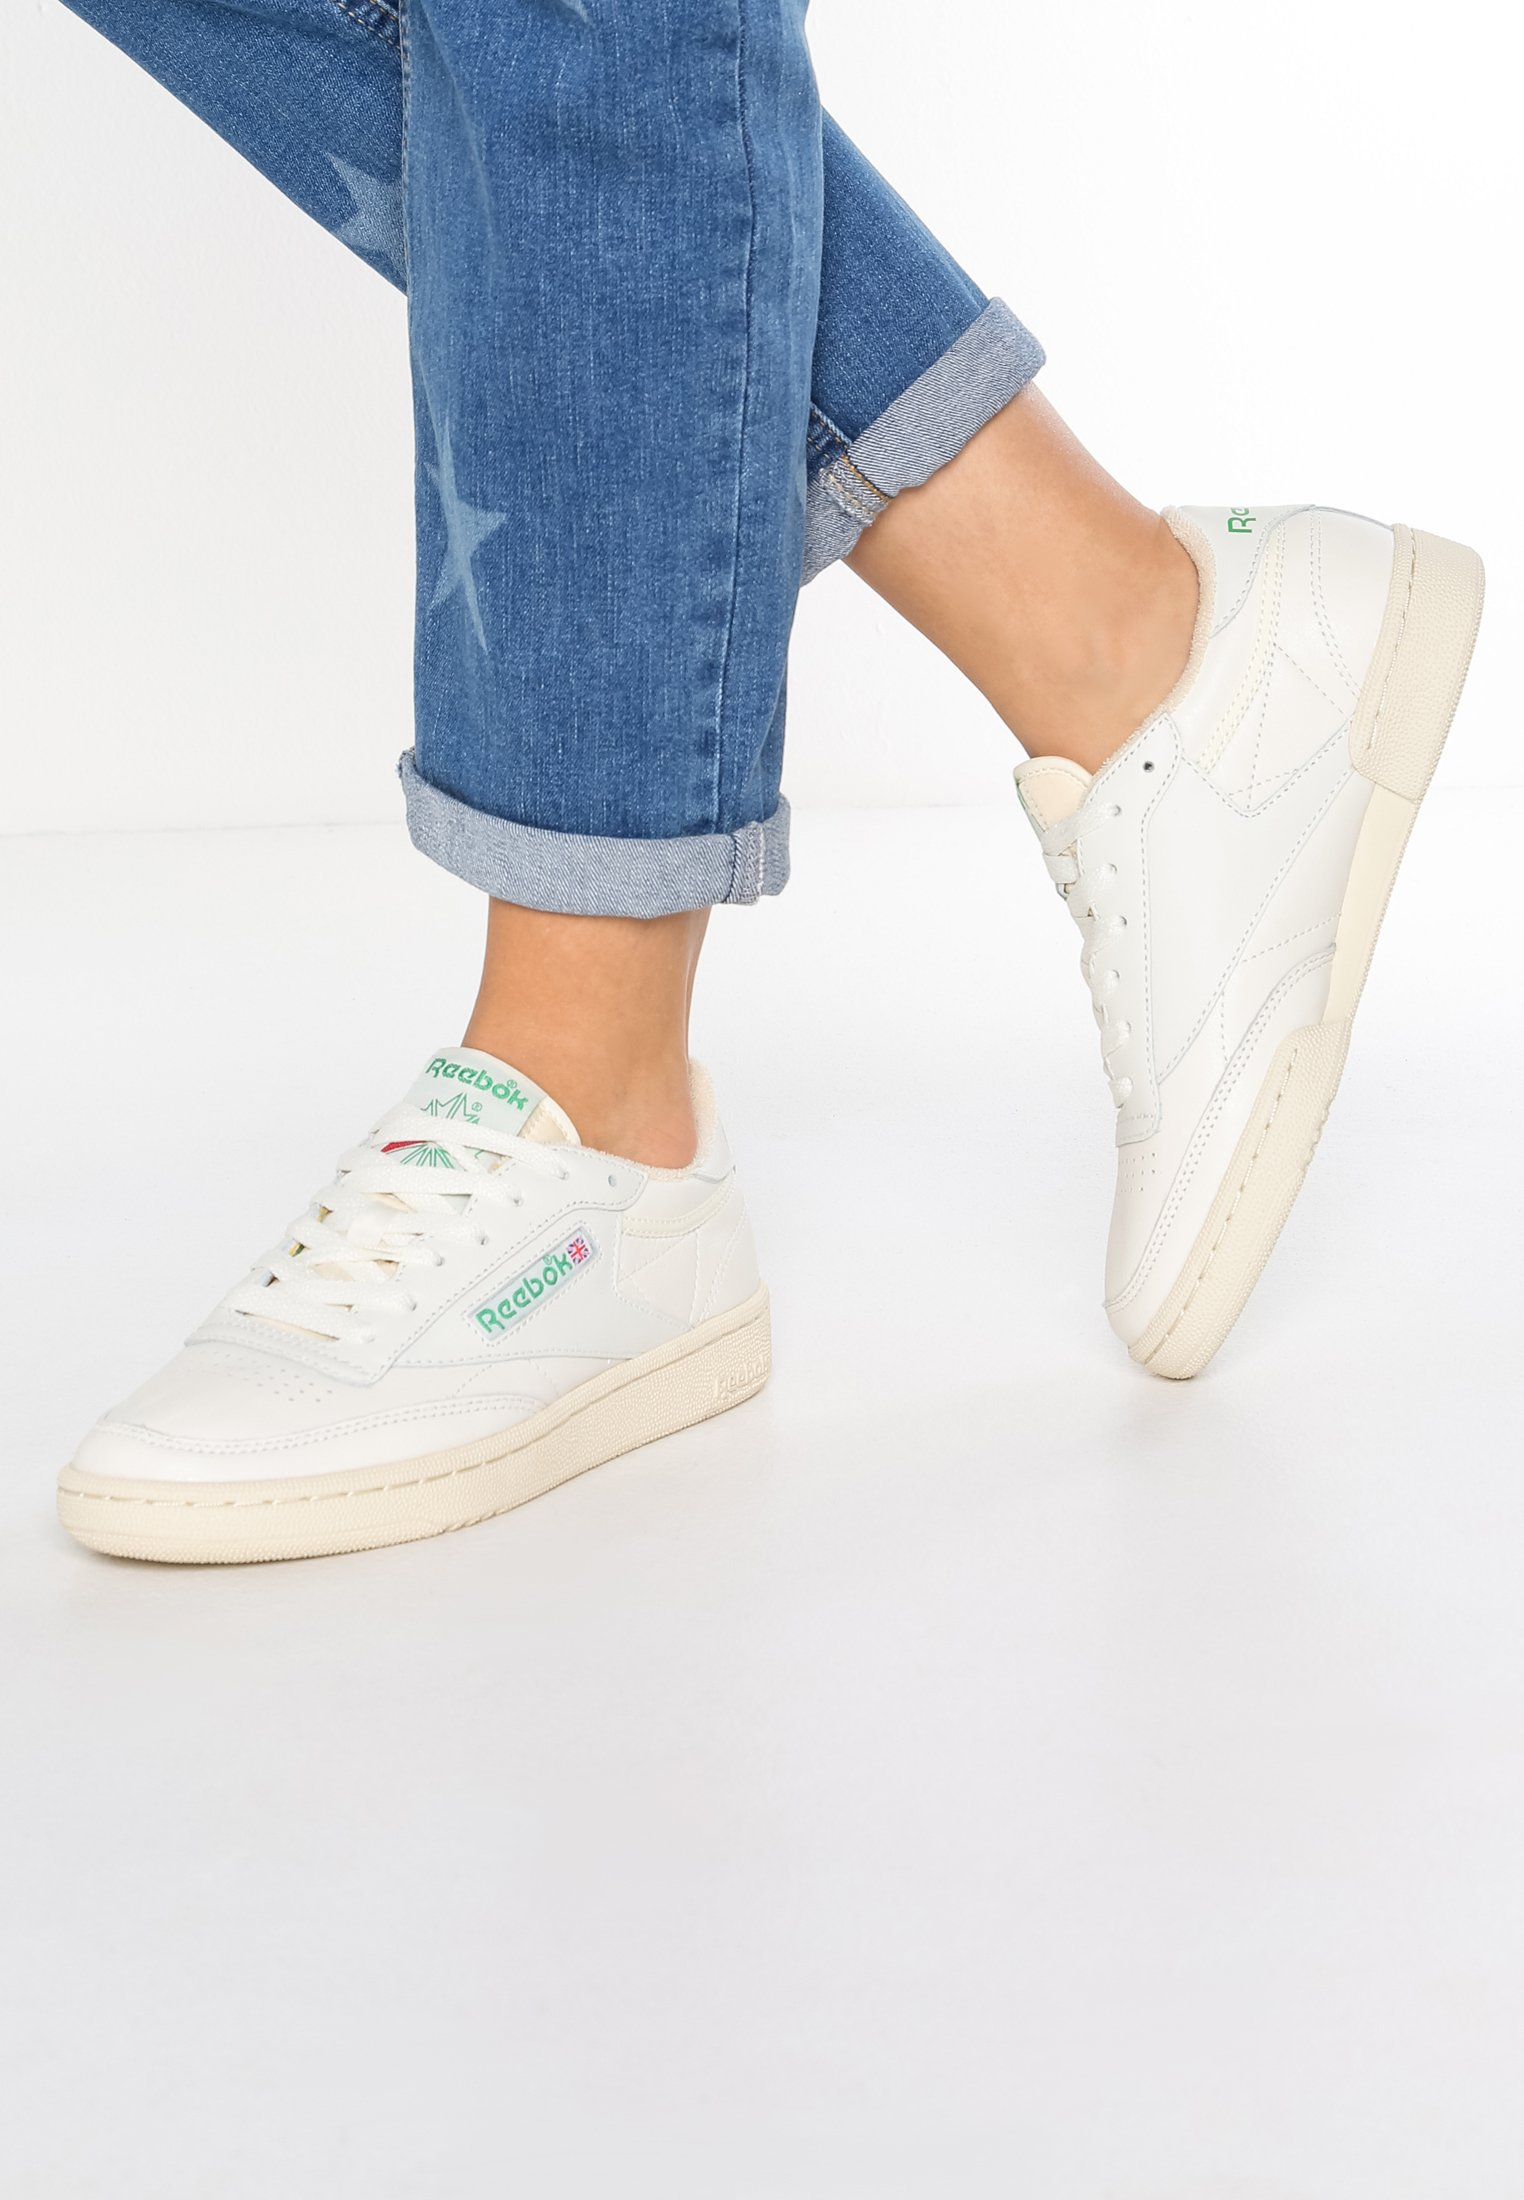 Women CLUB C 85 VINTAGE SOFT LEATHER SHOES - Trainers